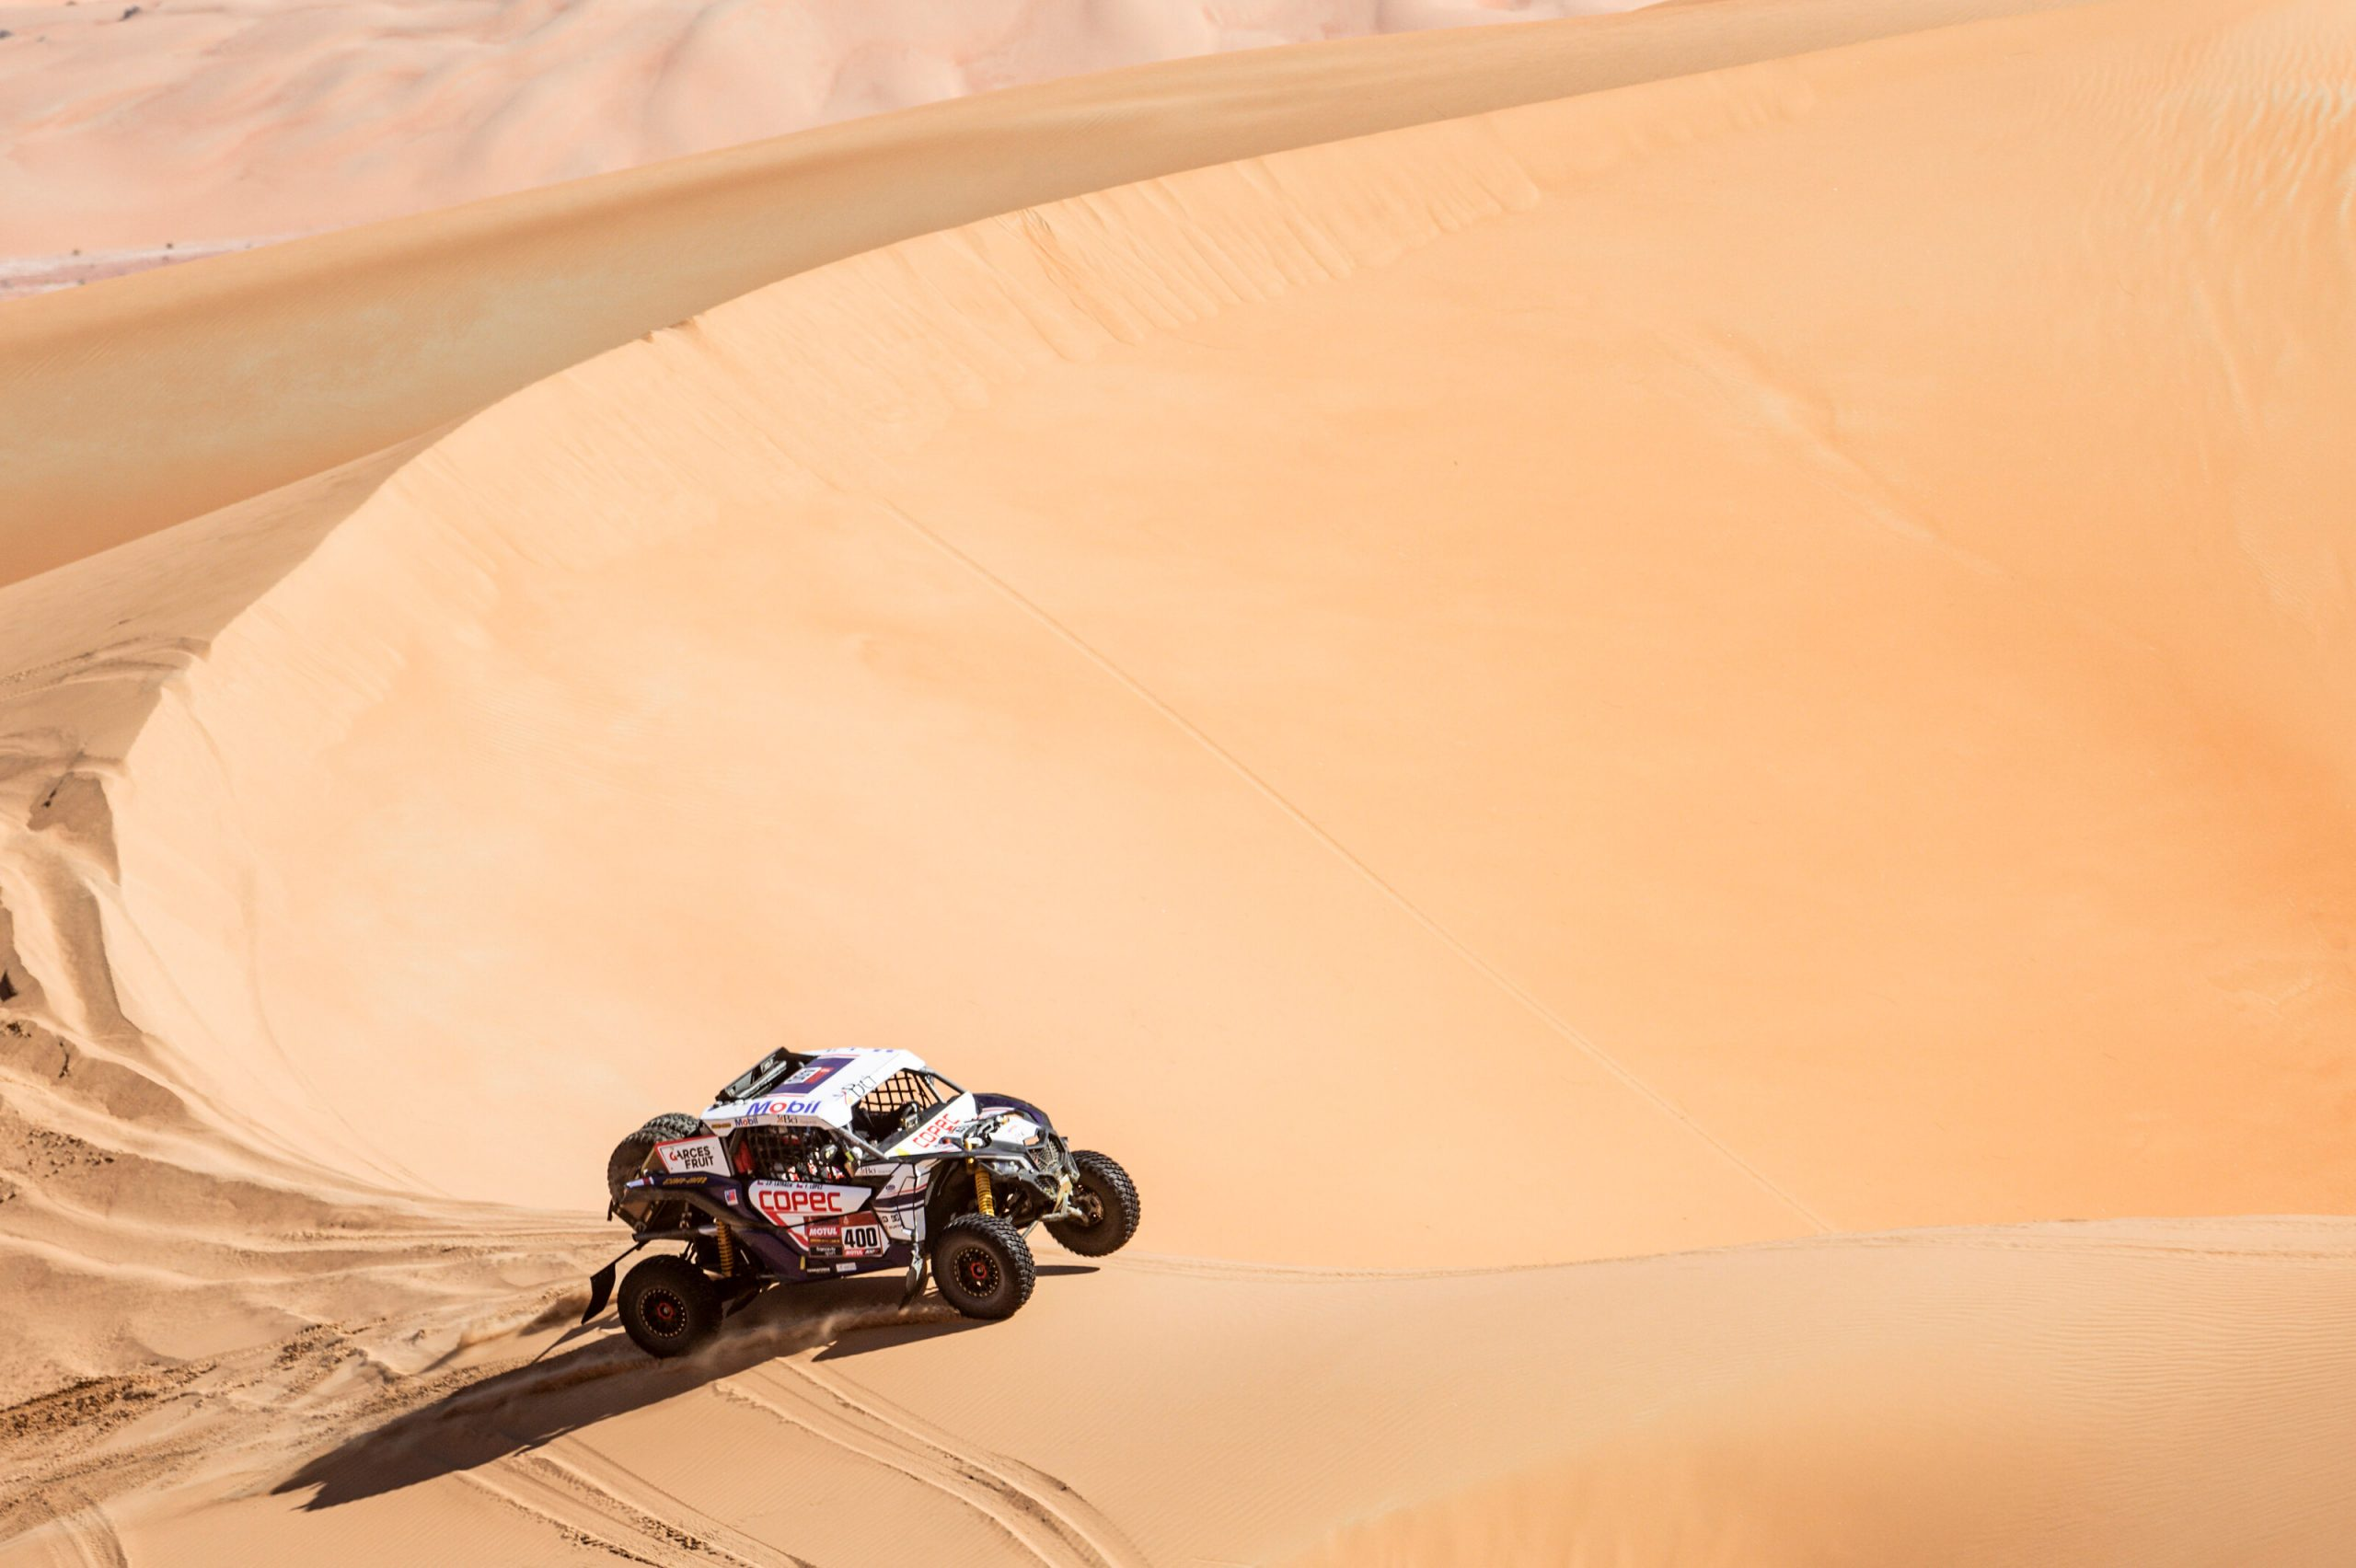 Francisco Chaleco Lopez (CHL) races during stage 11 of Rally Dakar 2020 from Shubaytah to Haradh, Saudi Arabia on January 16, 2020